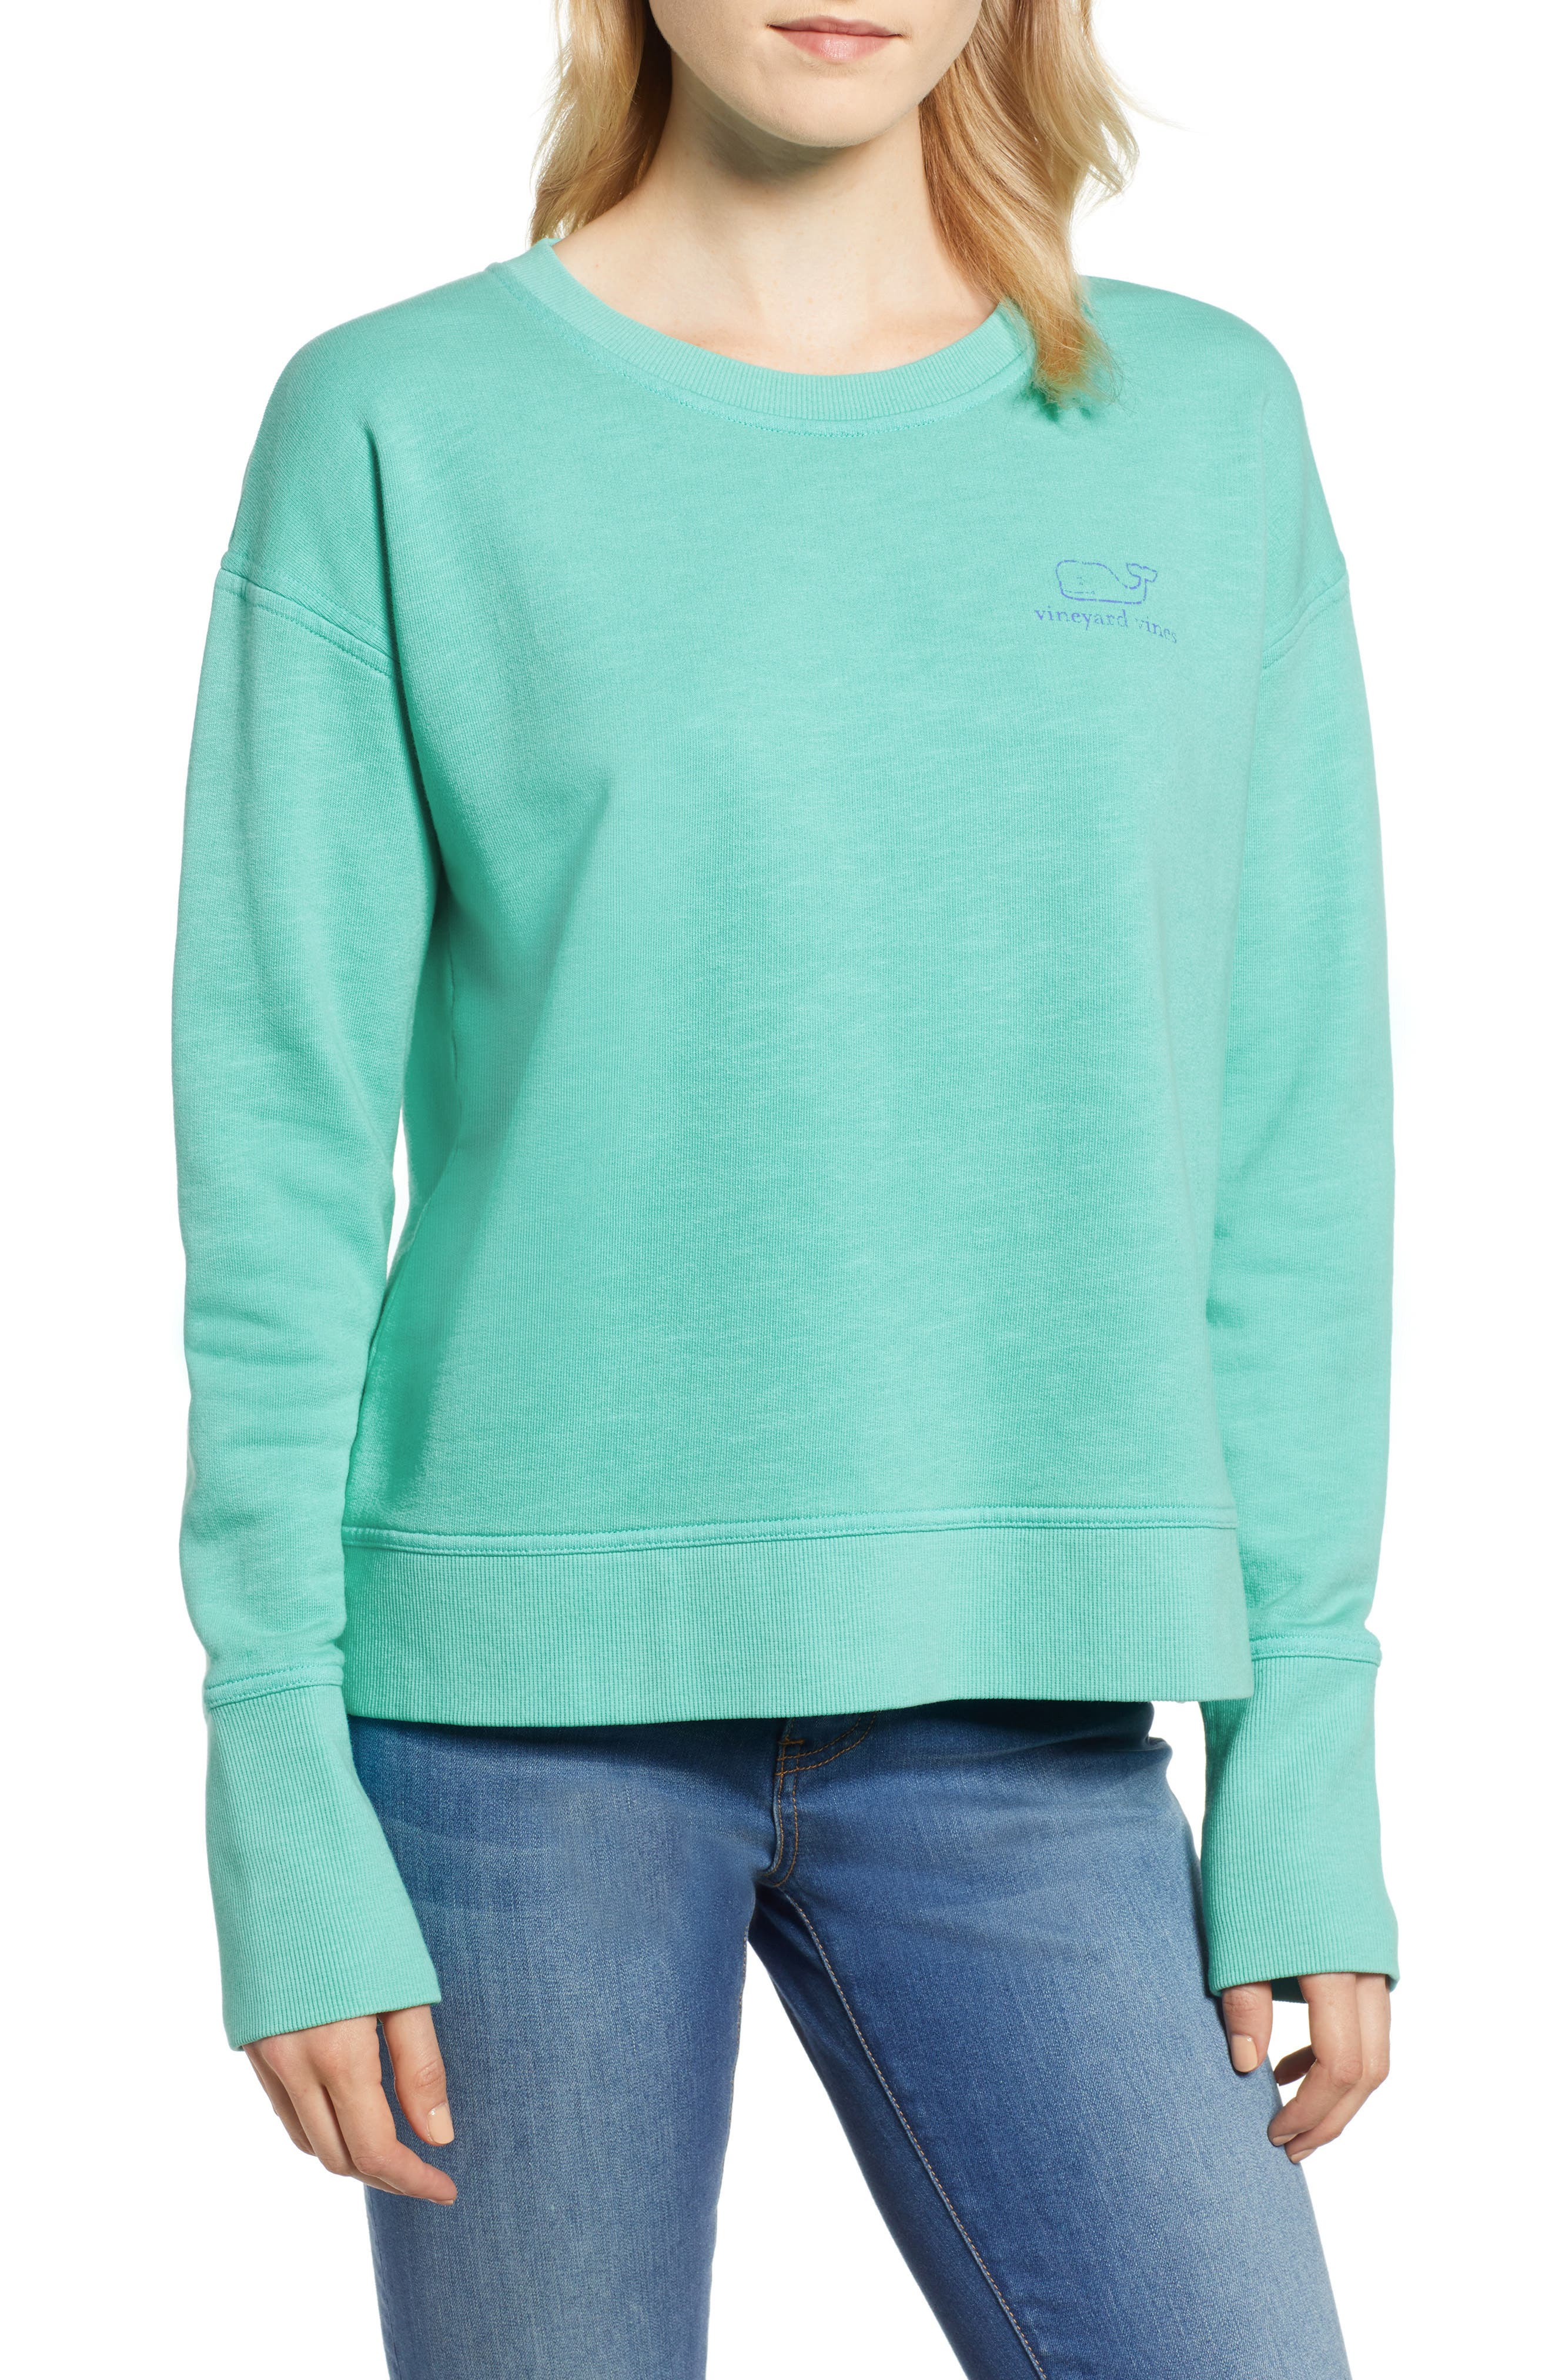 Garment Dyed Vintage Whale Long Sleeve Cotton Tee,                             Main thumbnail 1, color,                             464